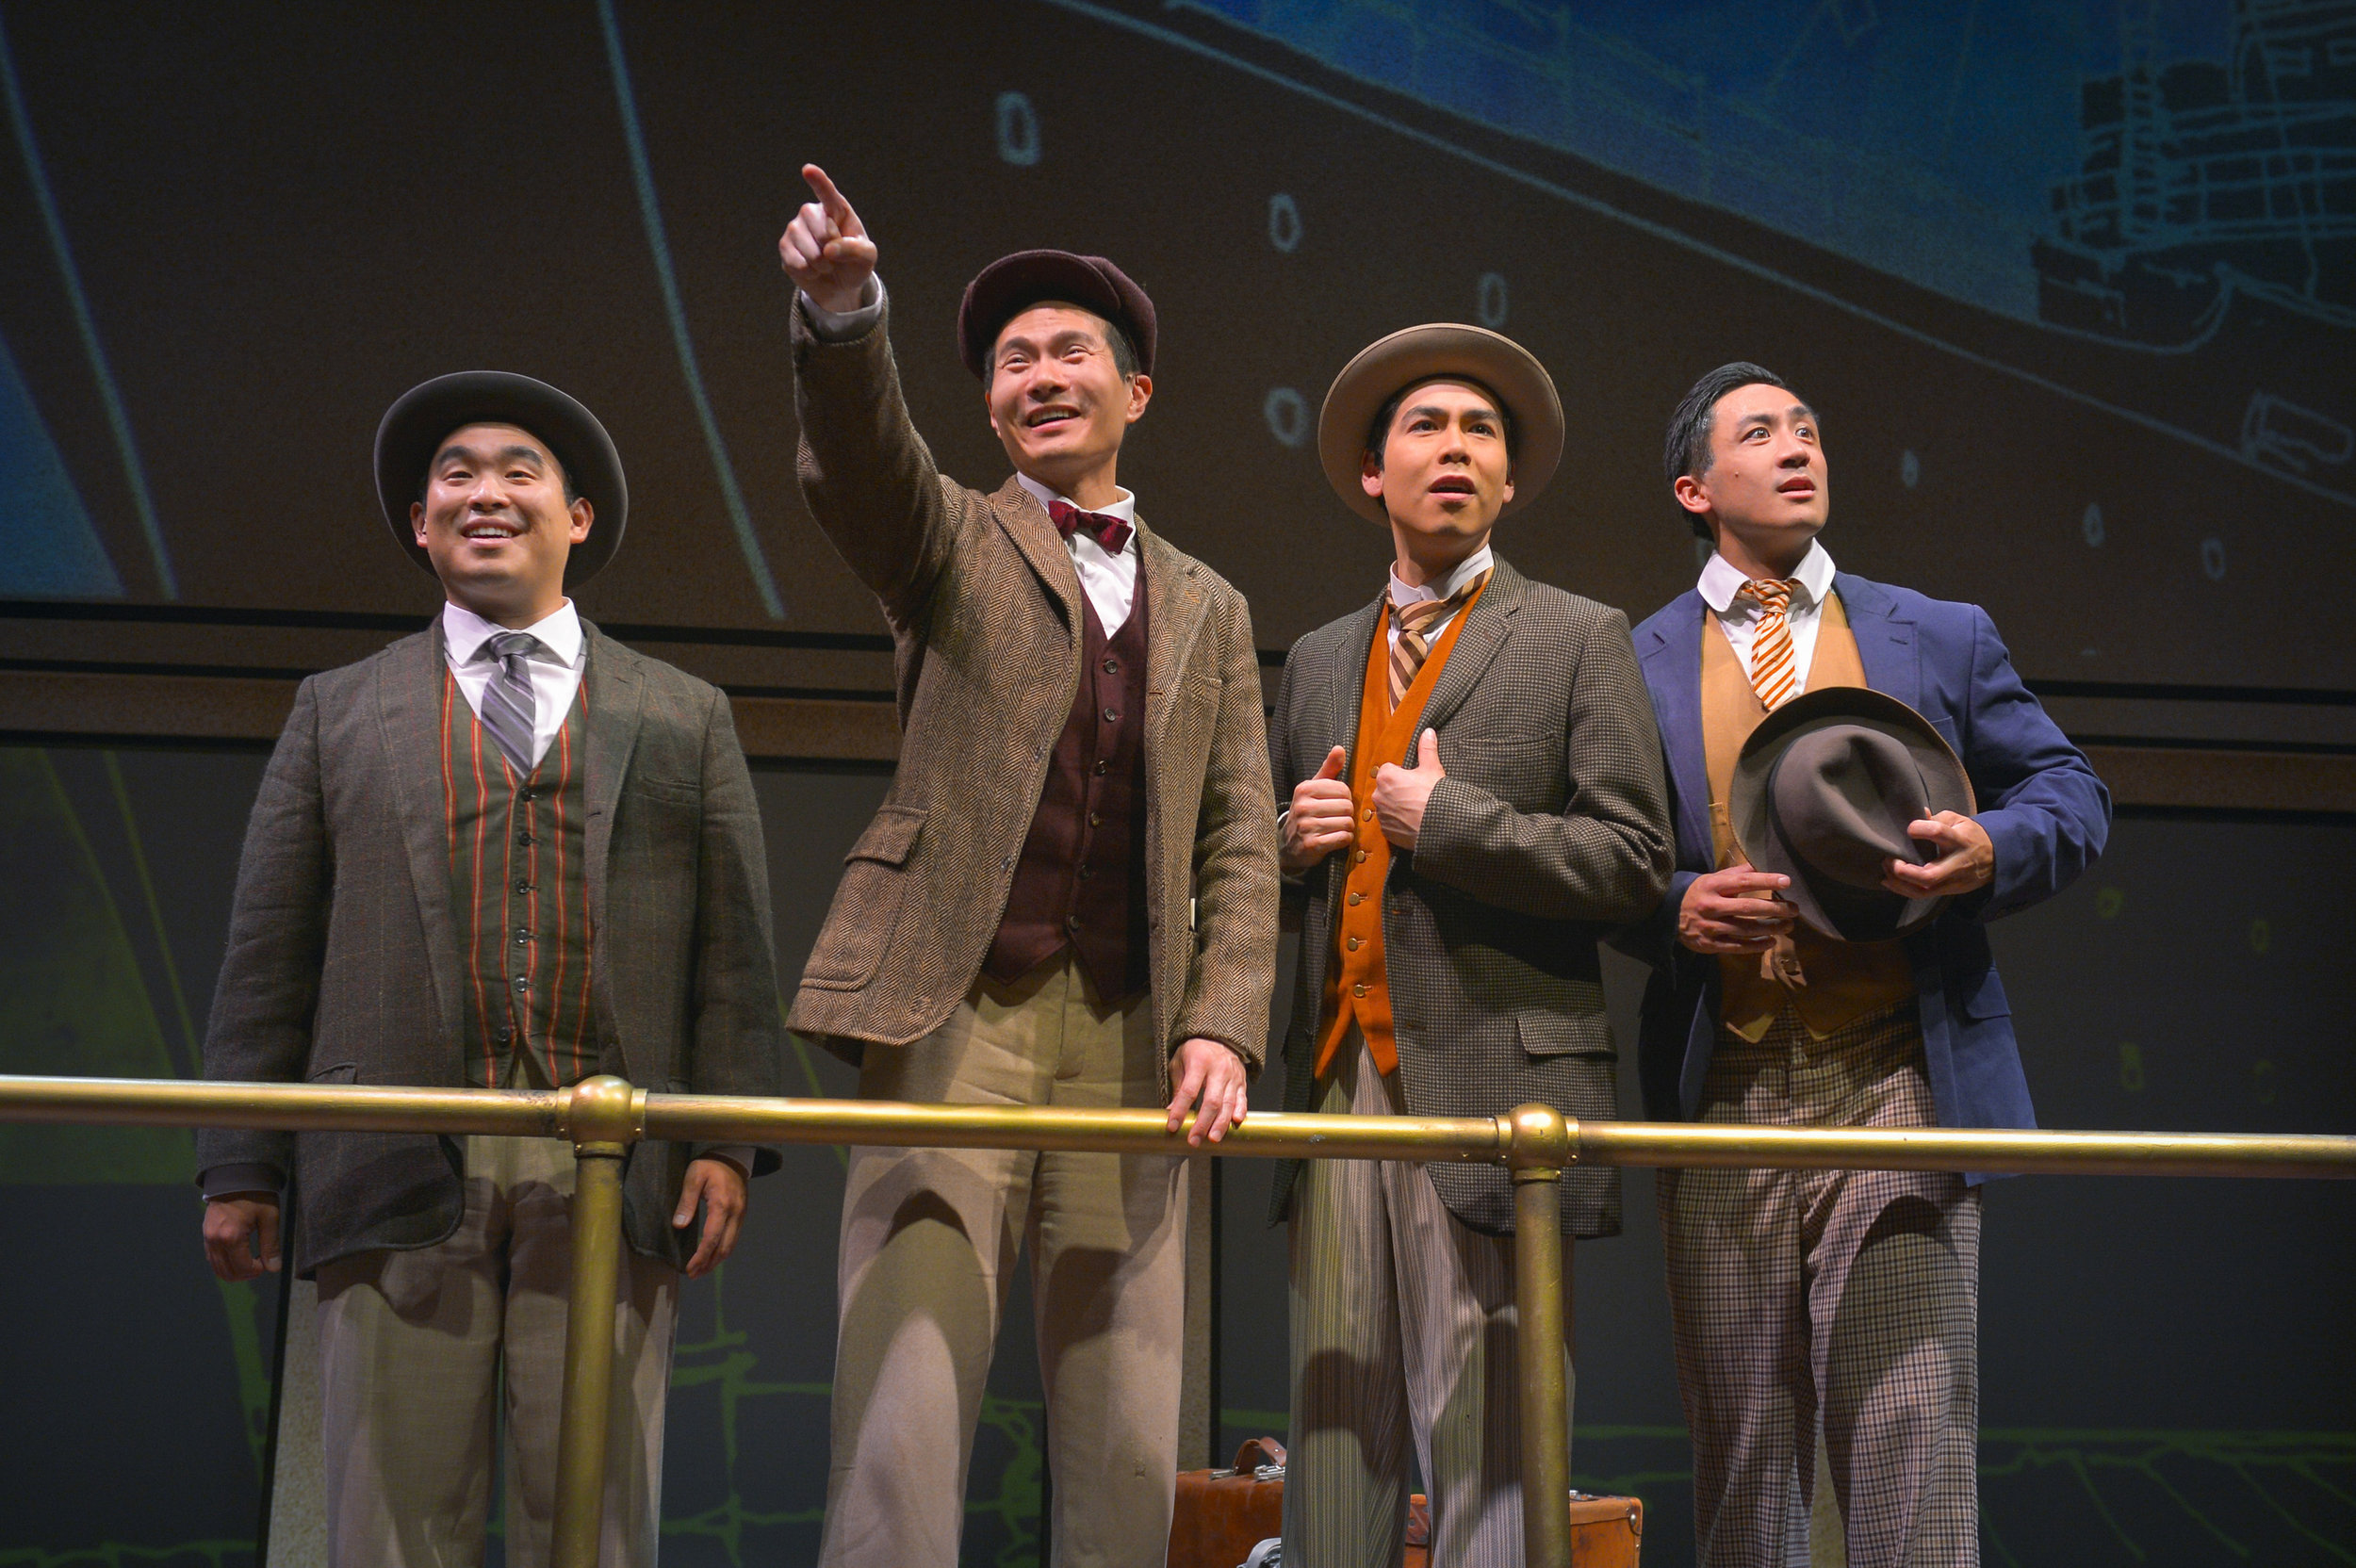 L-R: Frank (Phil Wong), Henry (James Seol), Fred (Sean Fenton), Charlie (Hansel Tan) Photo by Kevin Berne